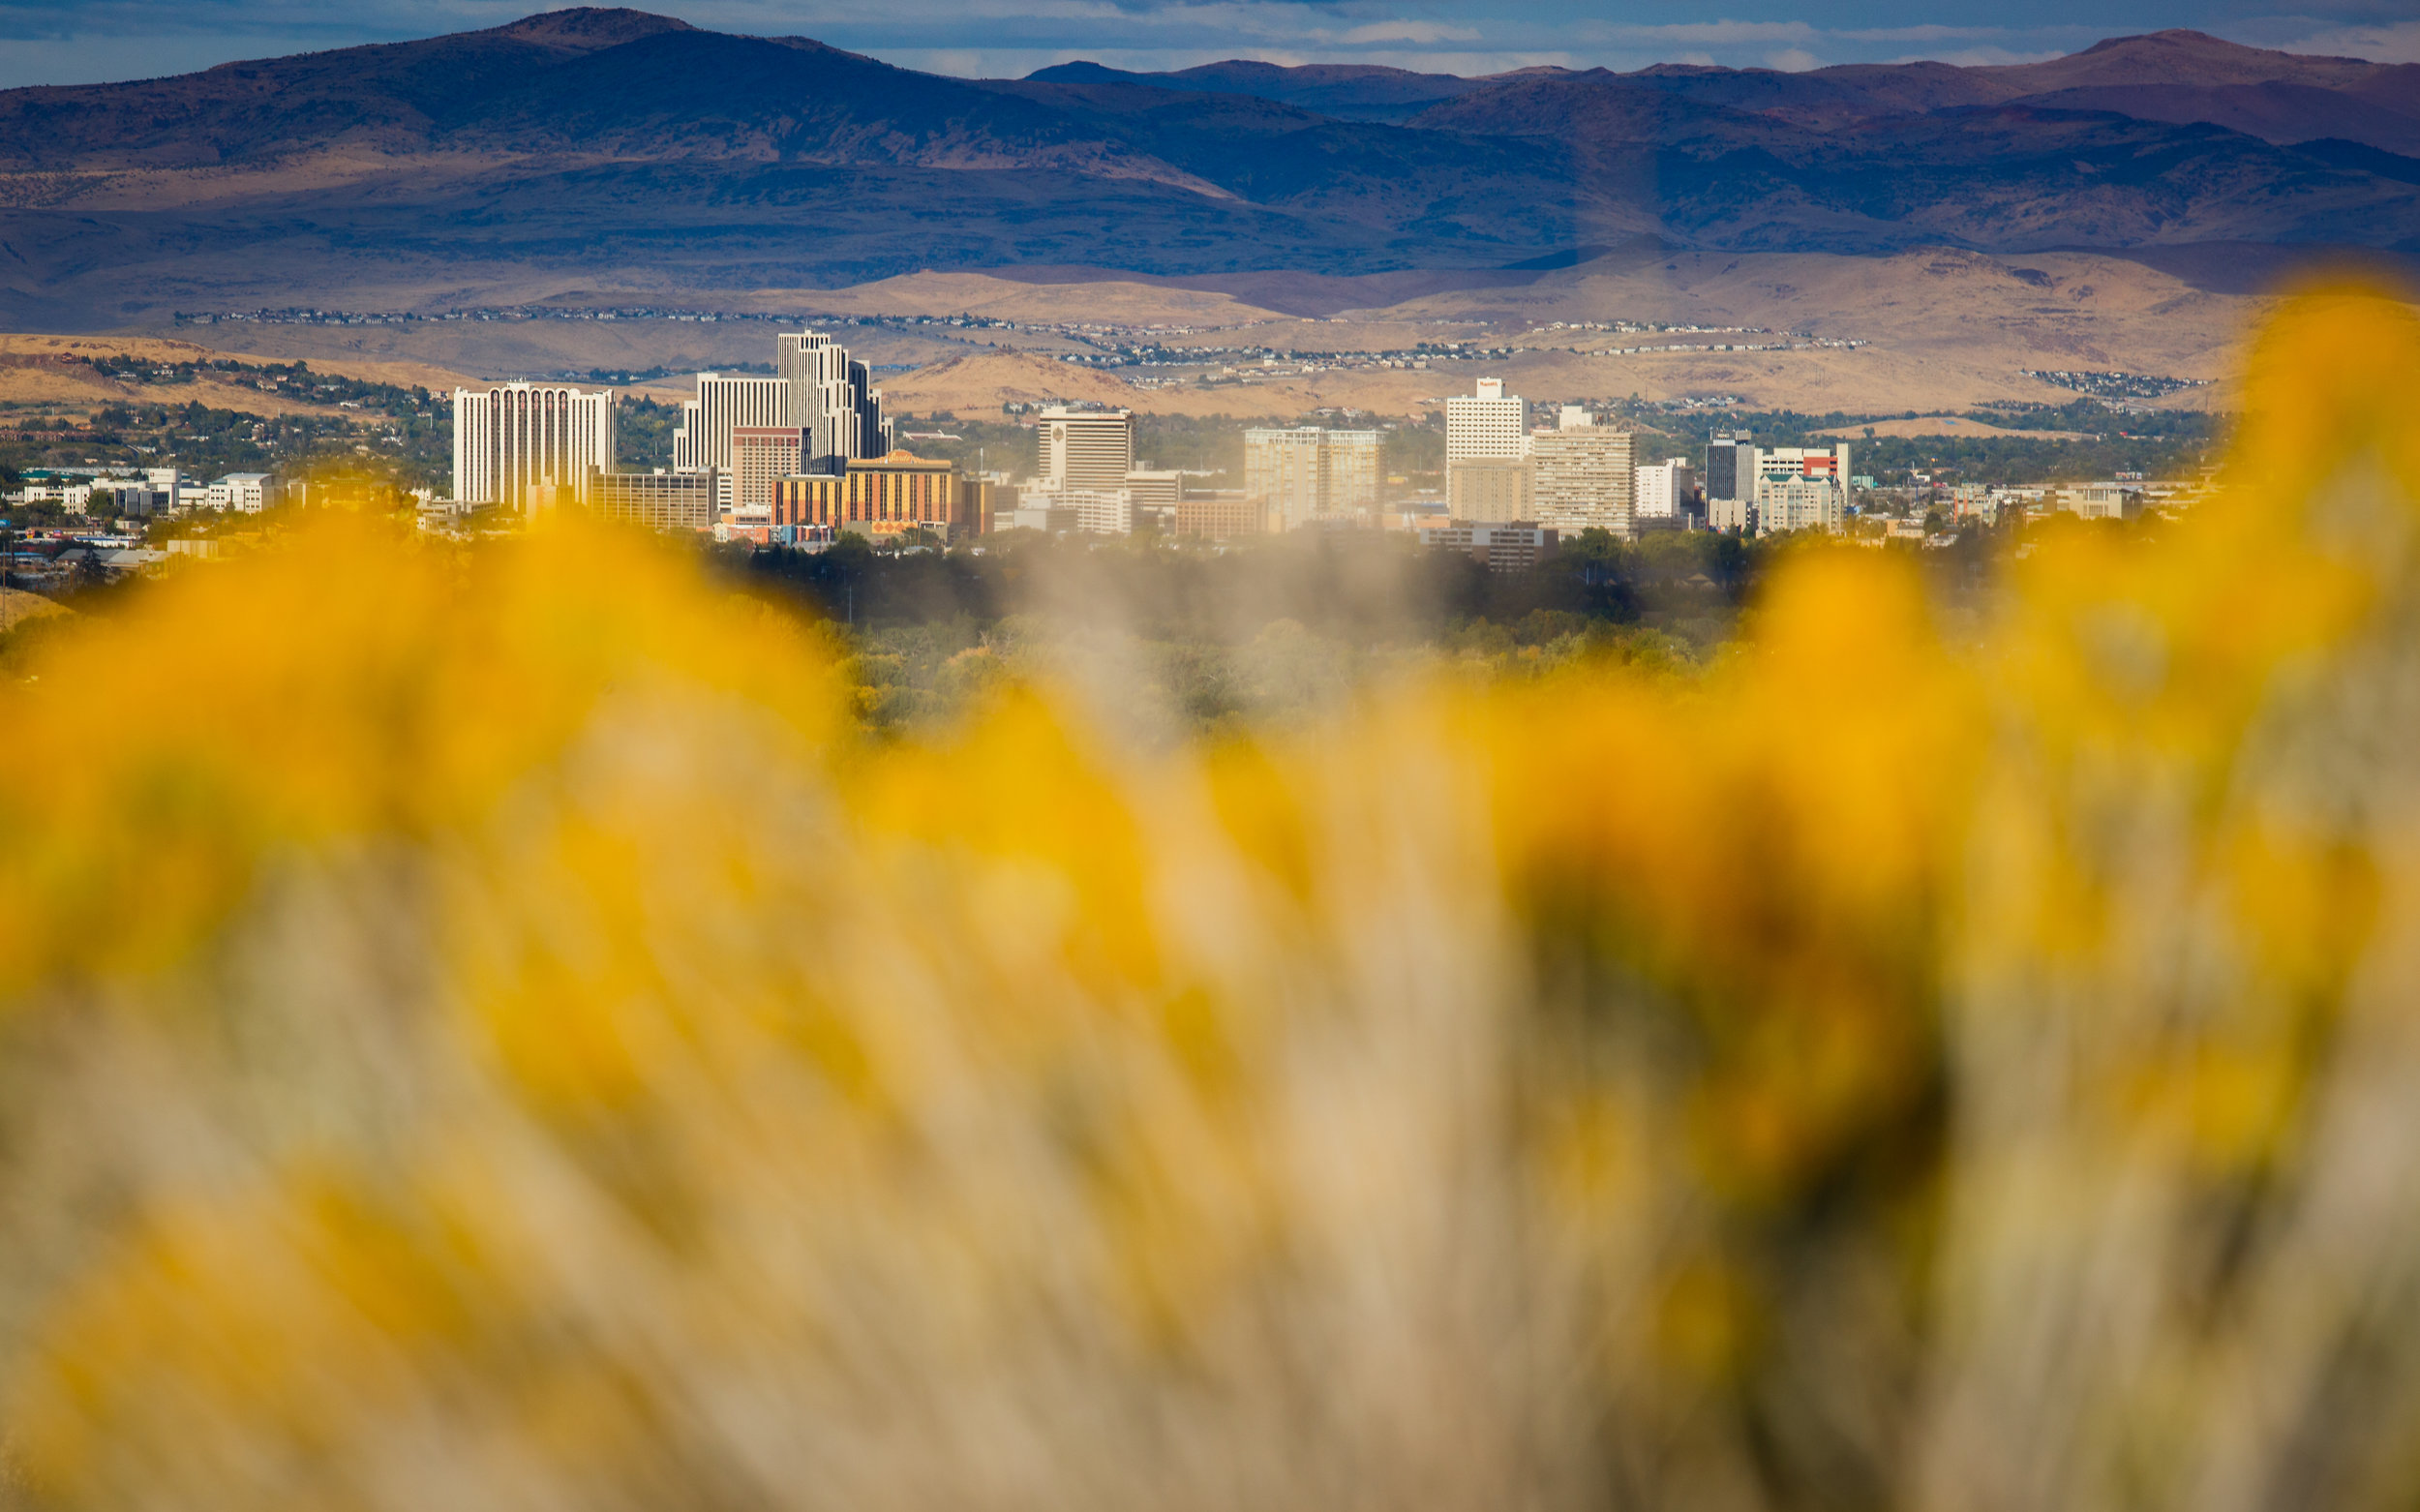 Reno, Nevada basking in some late afternoon golden light. 2017.